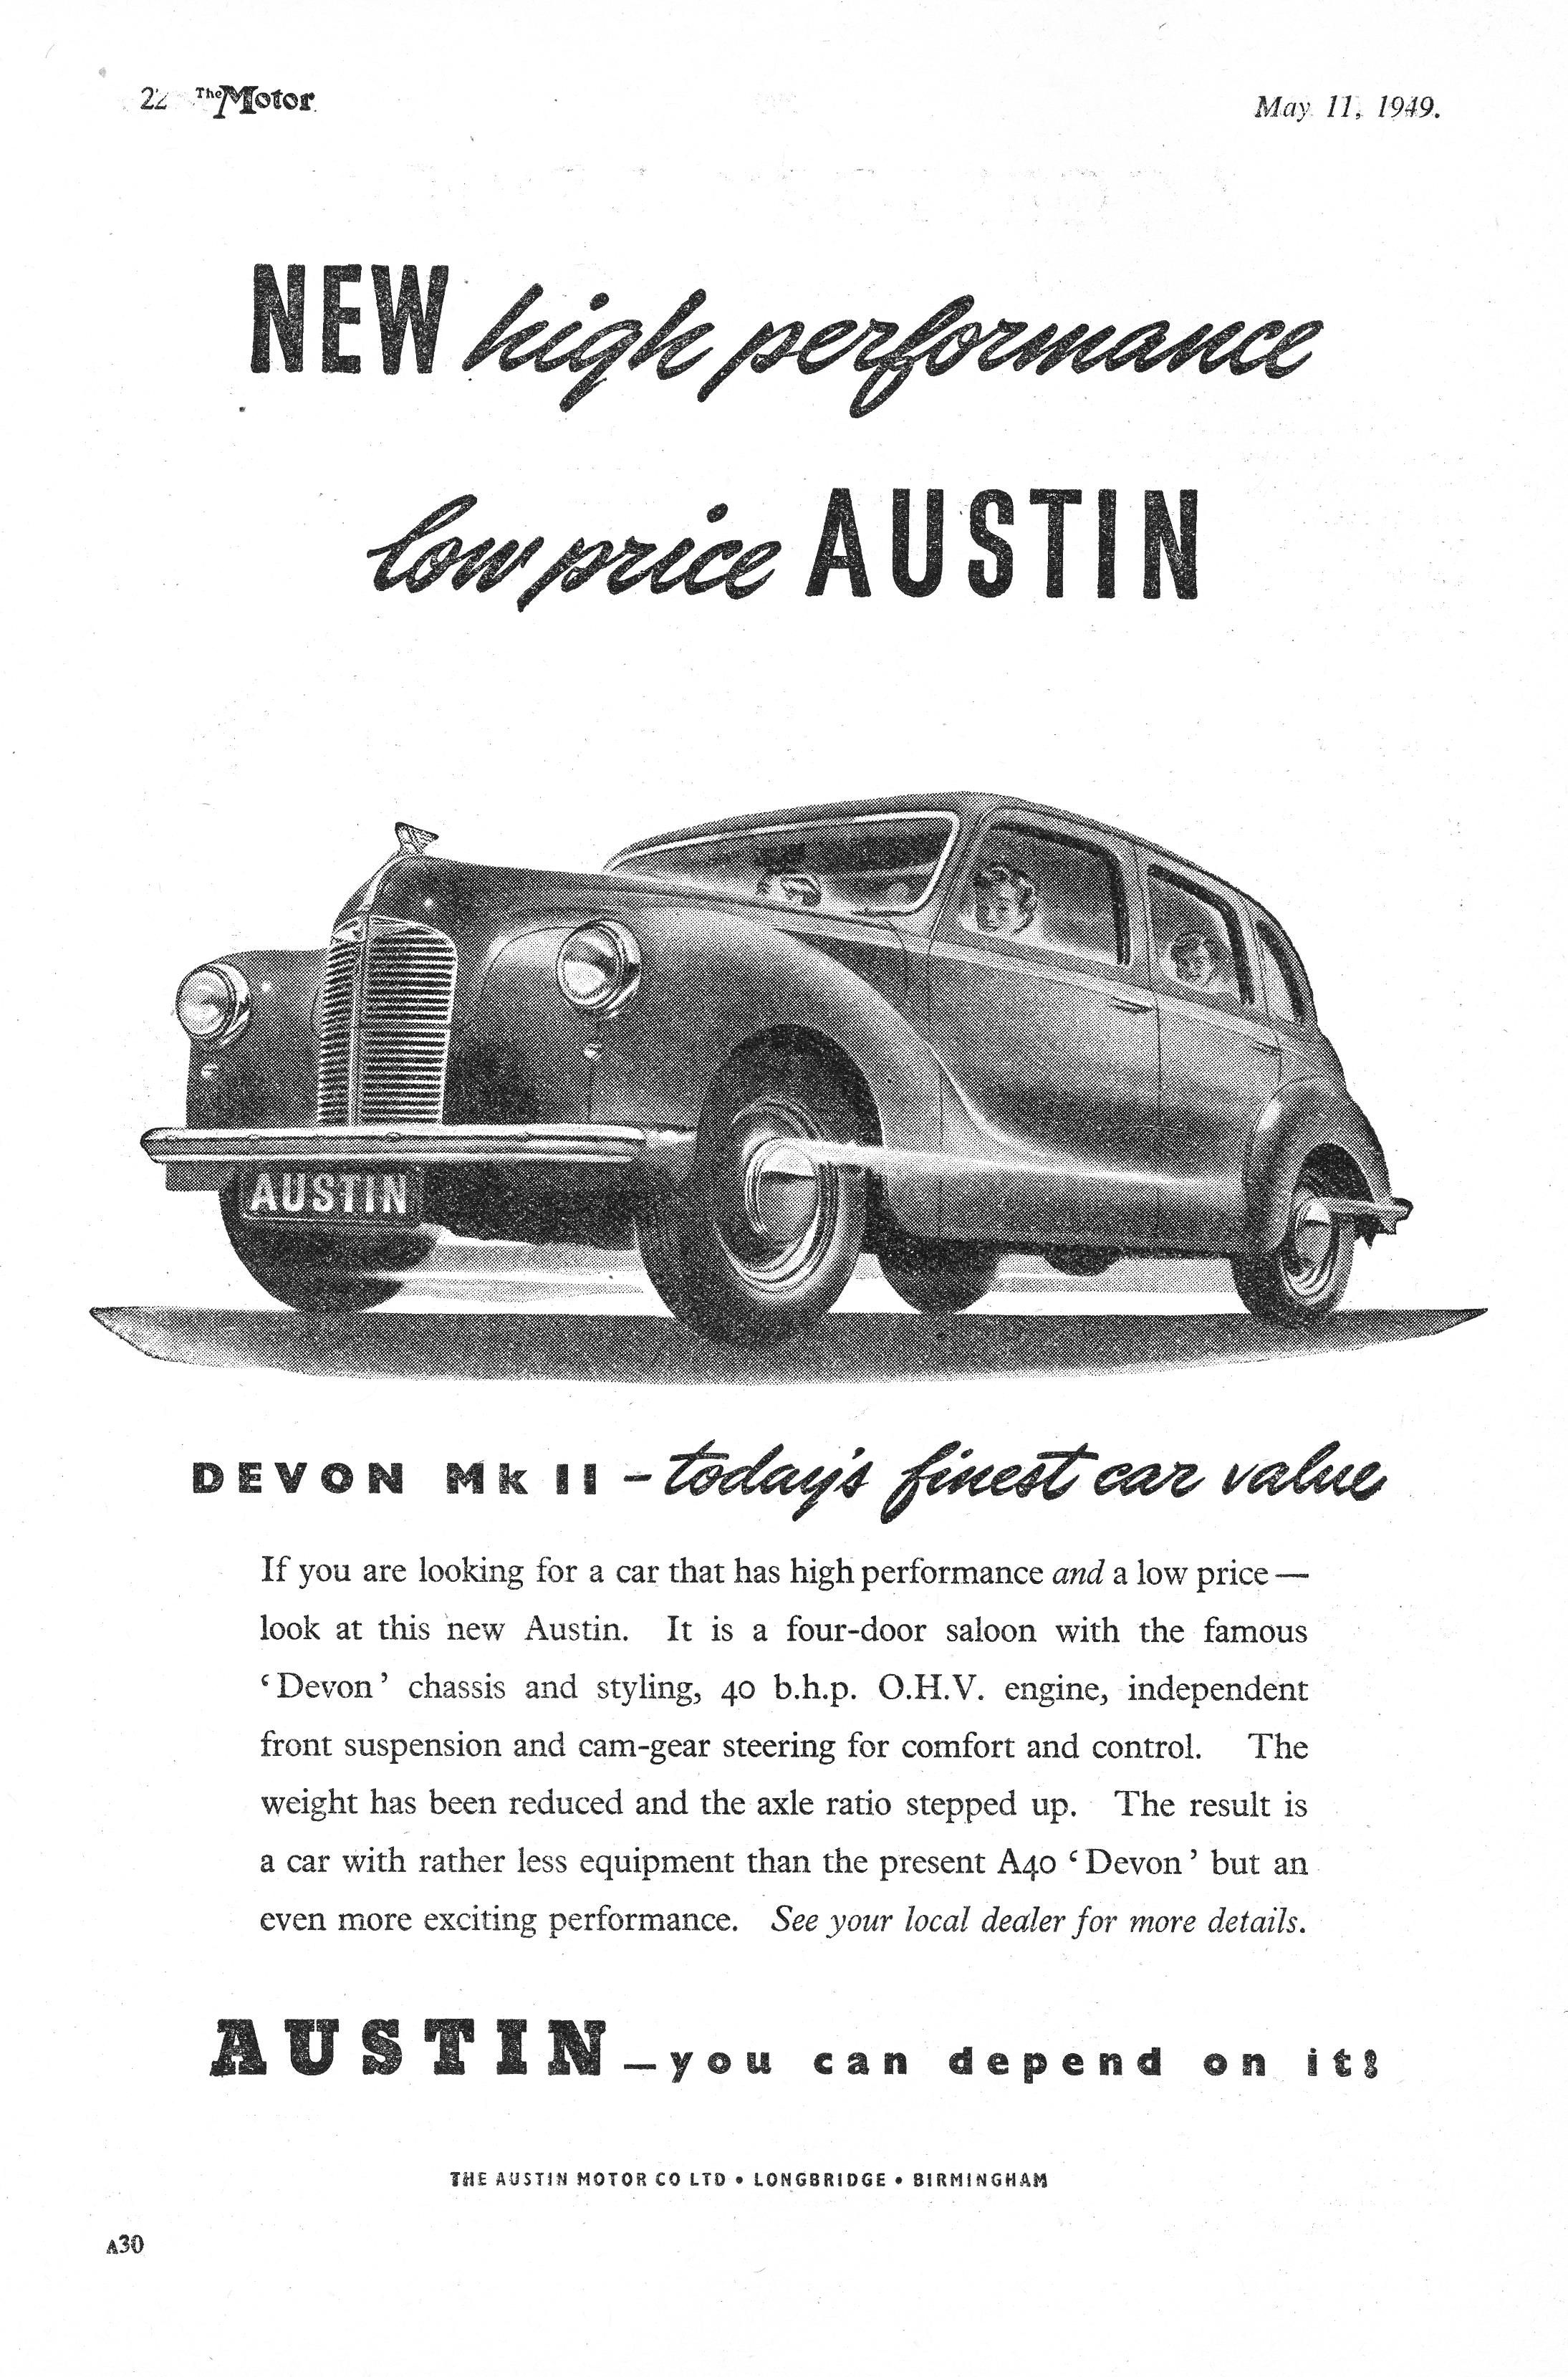 Austin Car Autocar Advert